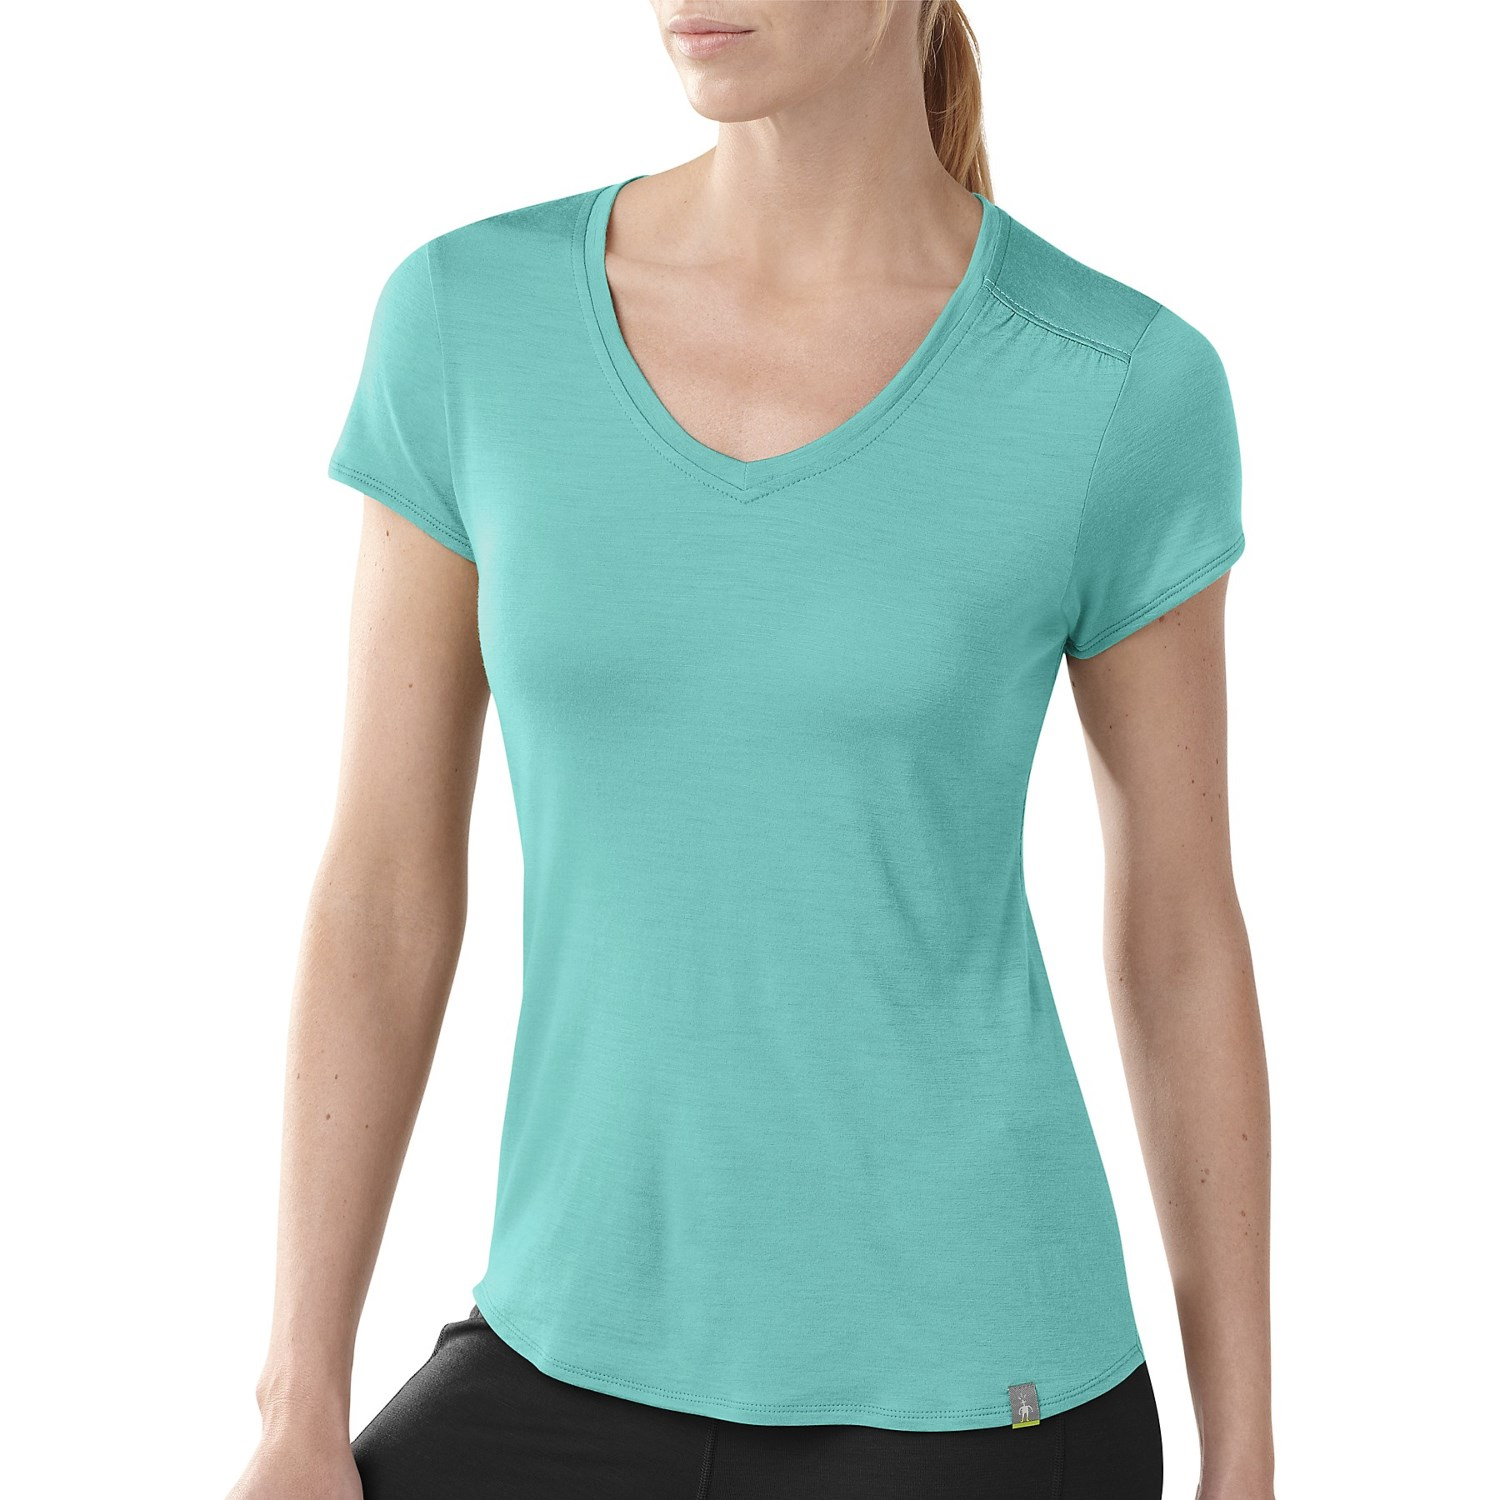 Smartwool V Neck T Shirt Short Sleeve For Women